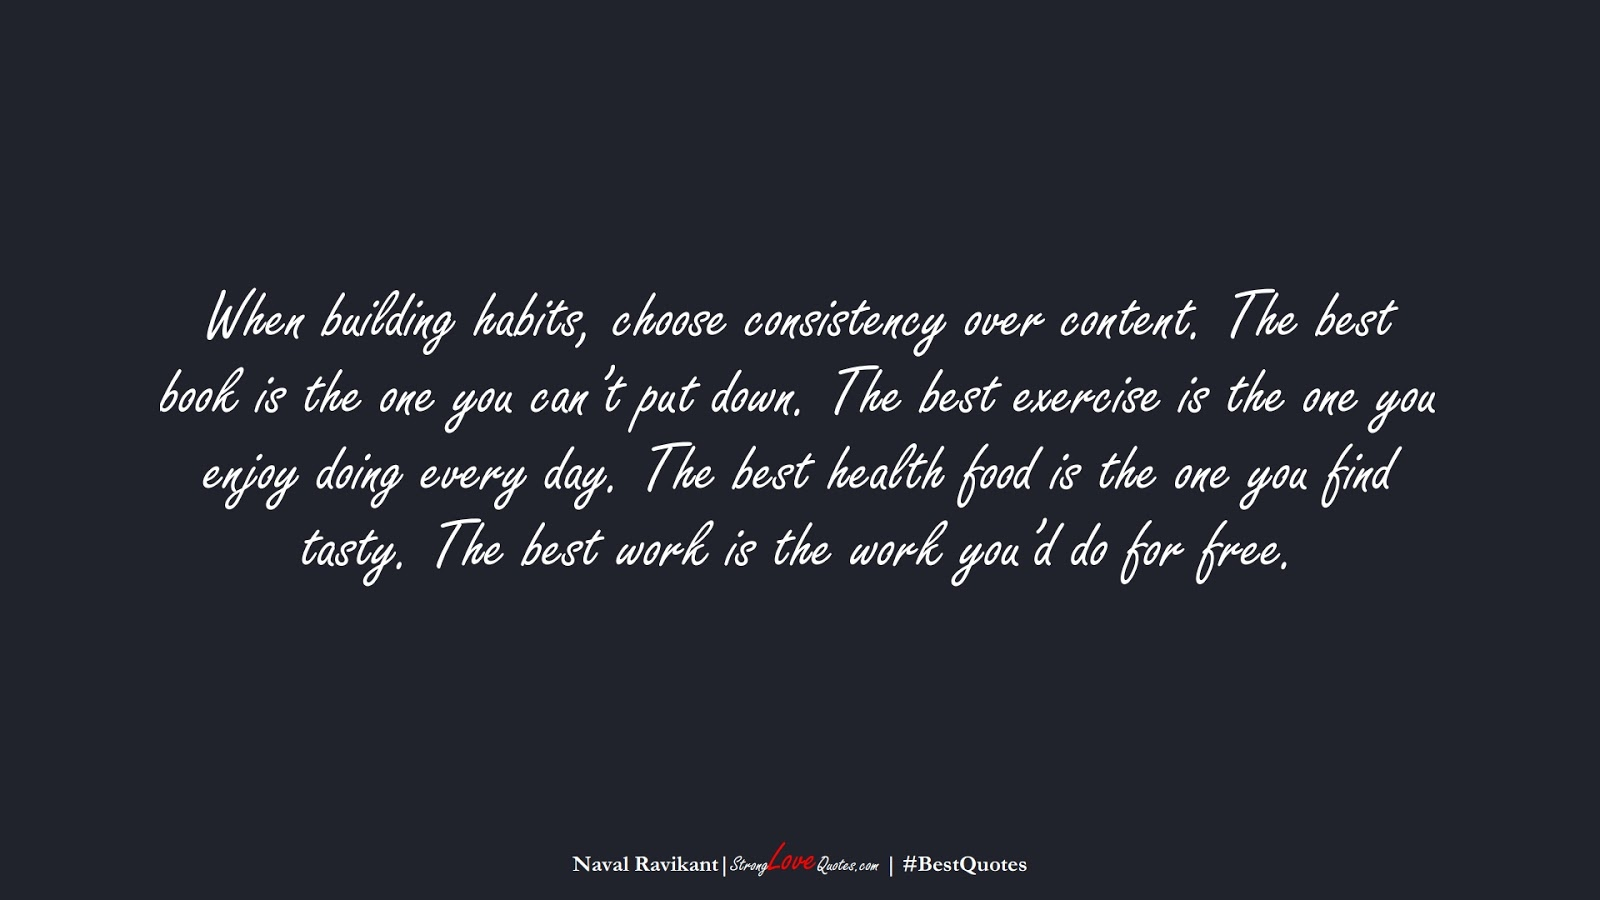 When building habits, choose consistency over content. The best book is the one you can't put down. The best exercise is the one you enjoy doing every day. The best health food is the one you find tasty. The best work is the work you'd do for free. (Naval Ravikant);  #BestQuotes